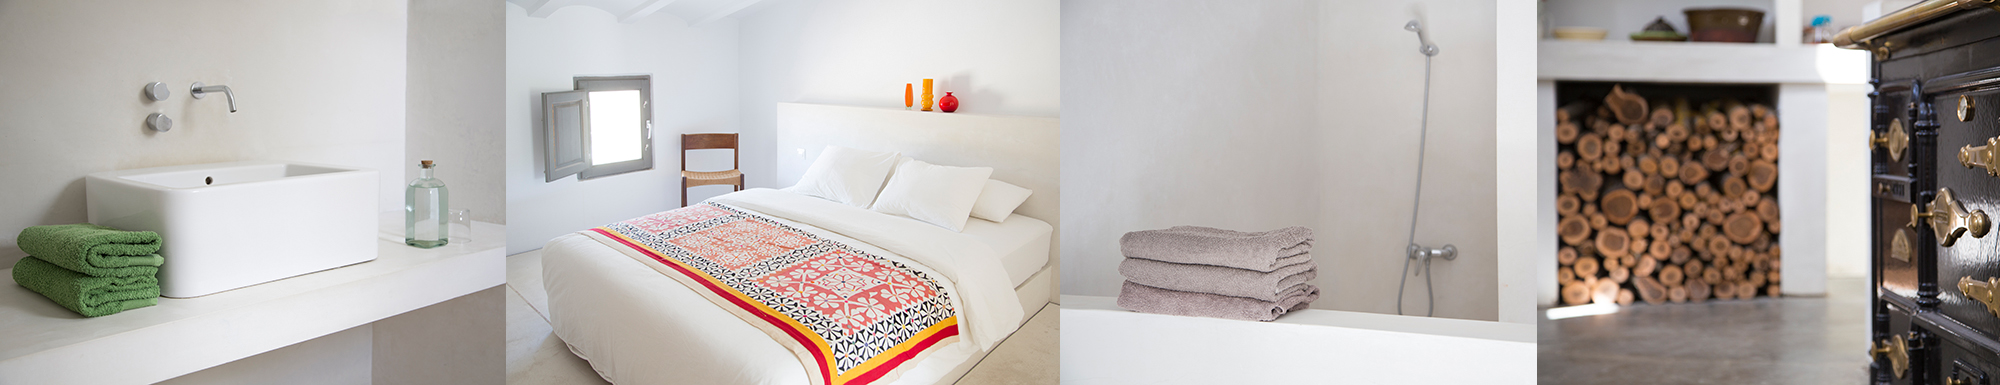 Accommodation is bright, warm and clean with wood heated radiant floors. More images…  https://joya-air.org/centre/